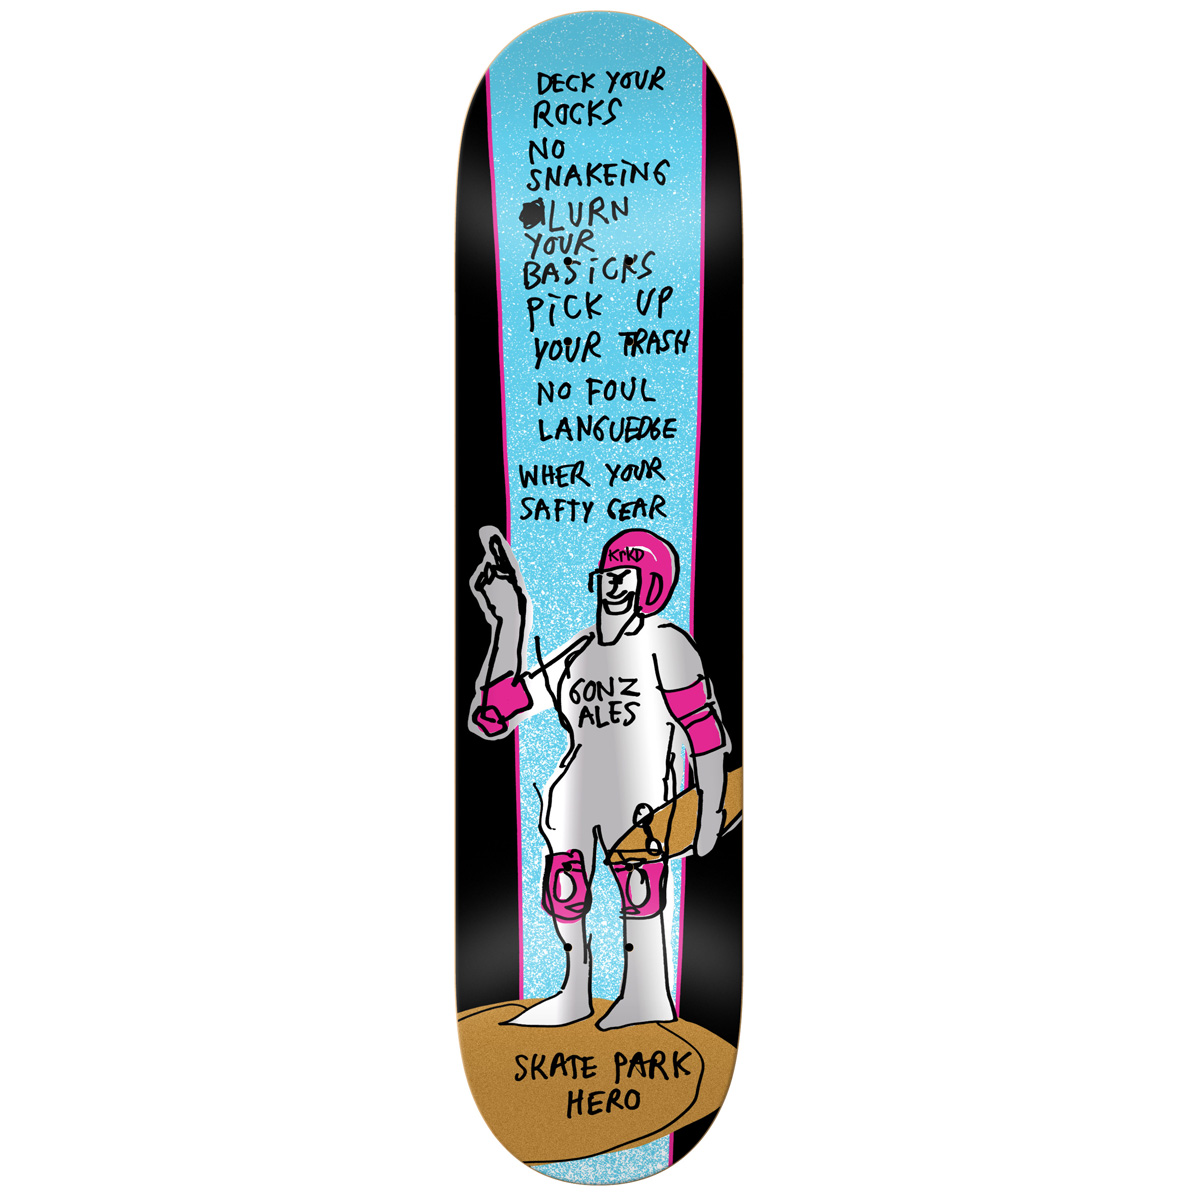 KRK DECK PARK HERO GONZ 8.12 - Click to enlarge